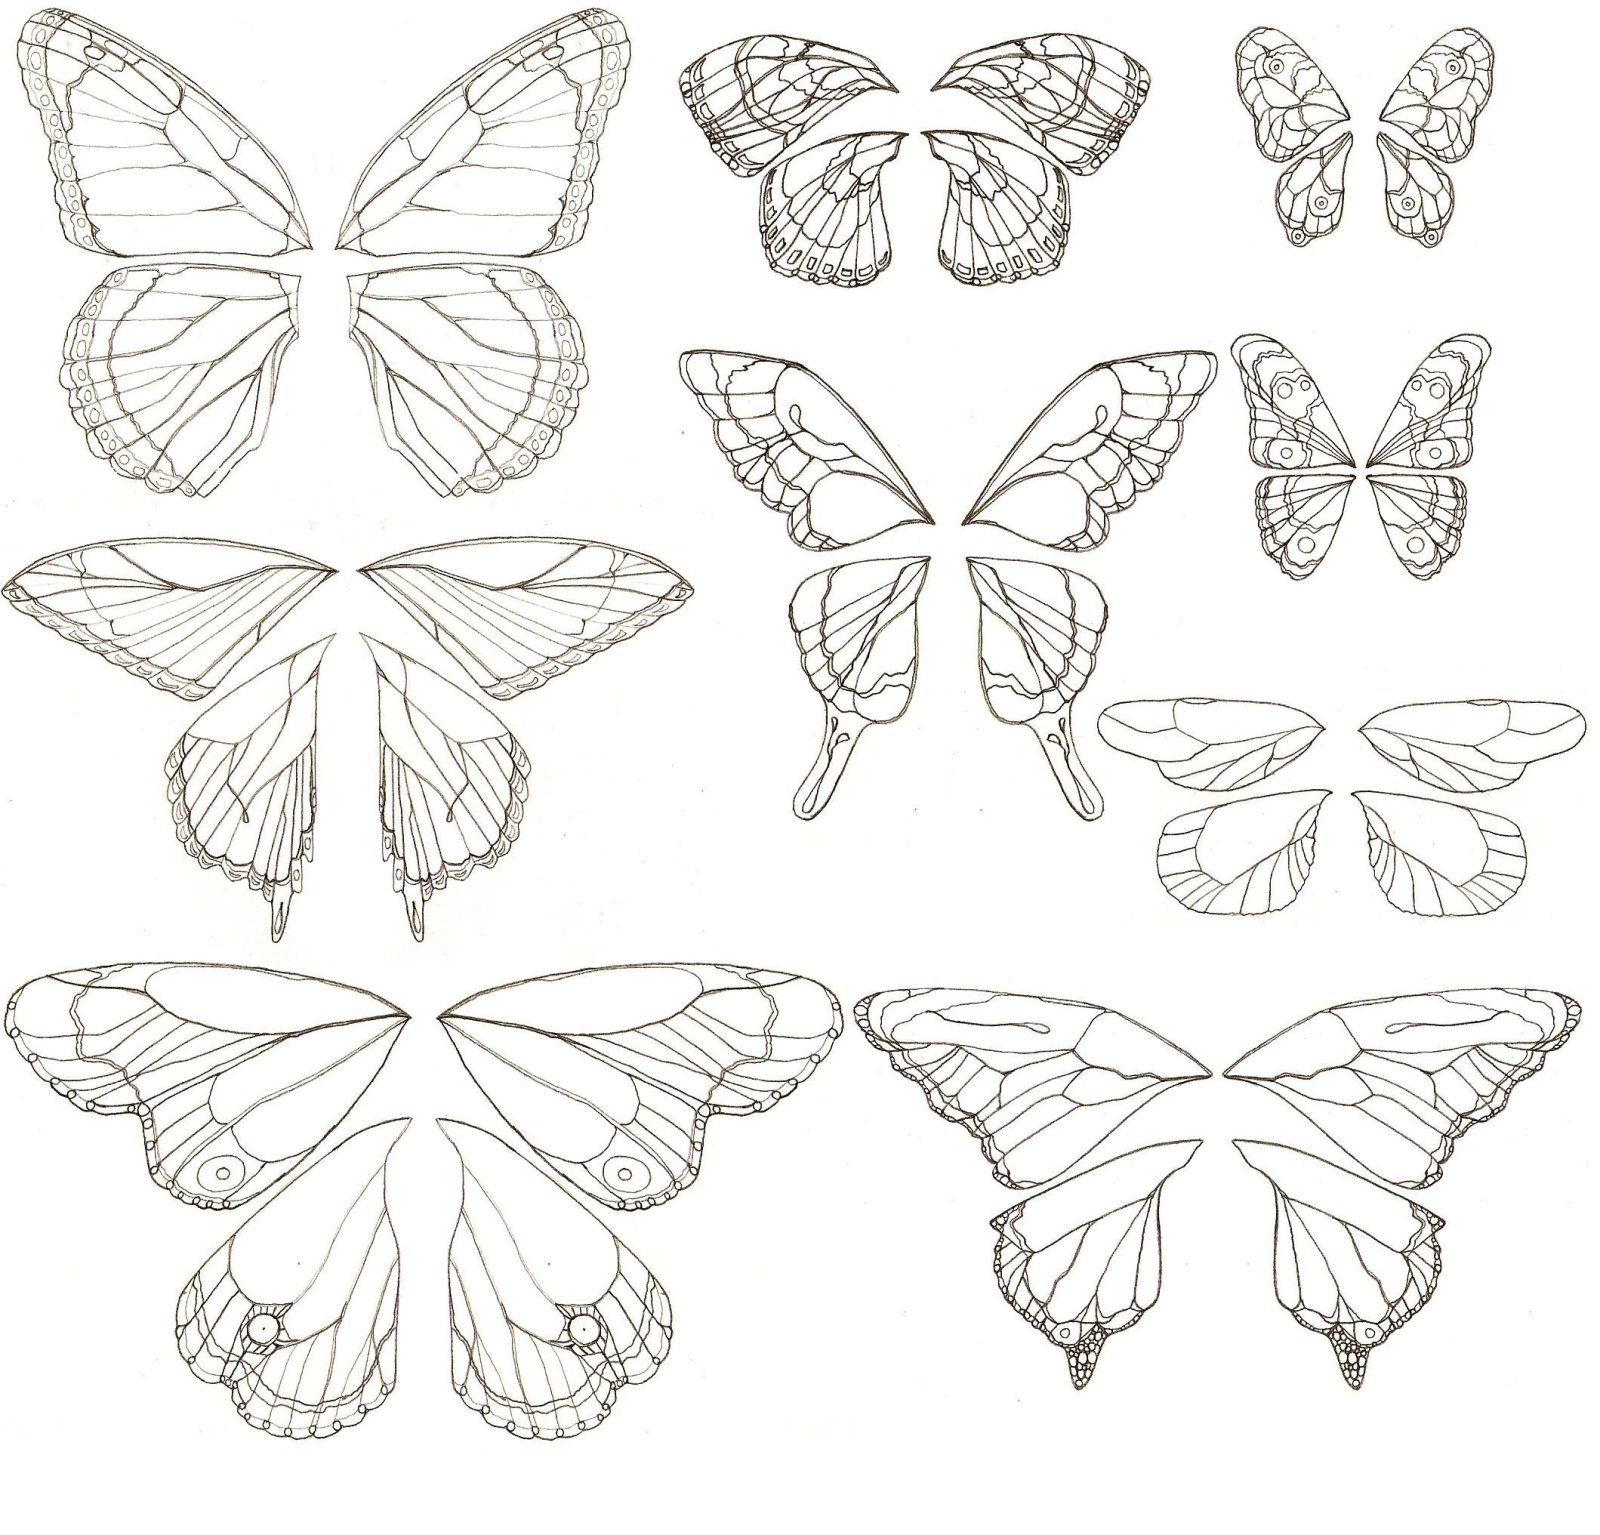 Uncategorized Butterfly Wings Drawing possible sub lesson for one without art background can teach copy of butterfly wings jpg johanna dragonlady jimenez scifi fantasy art